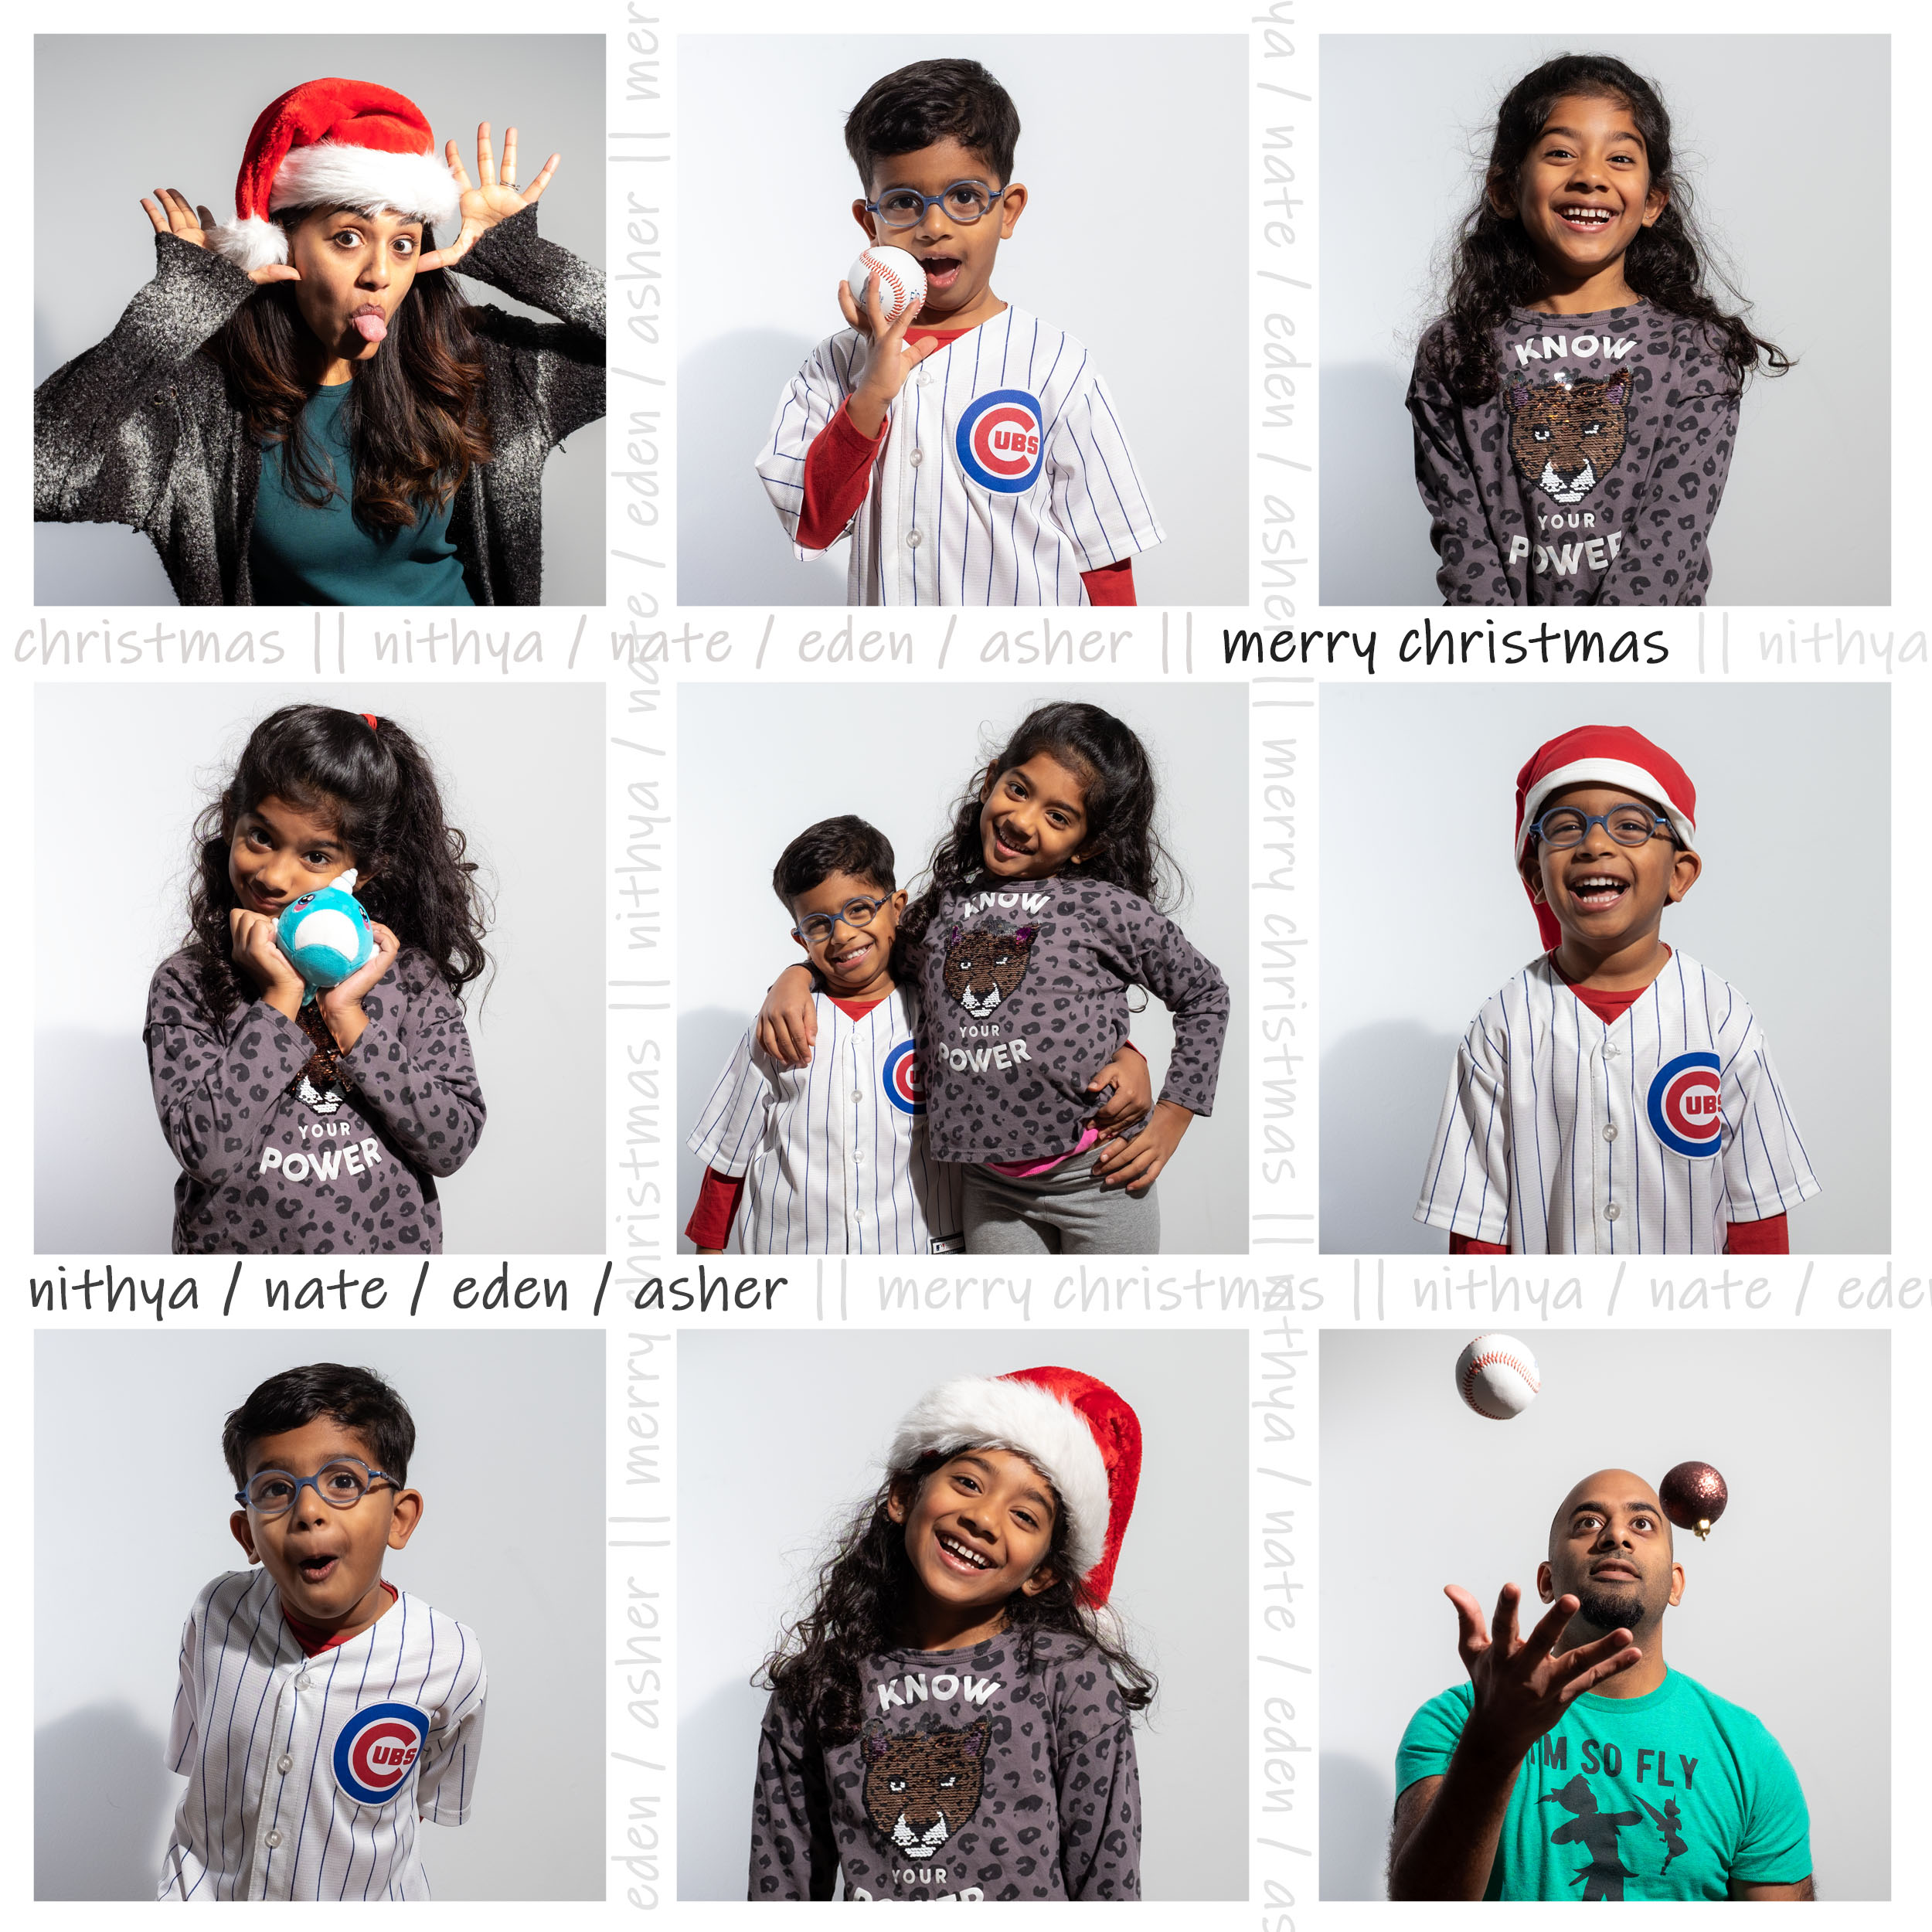 top image for Merry Christmas! by chicago wedding photographer nate mathai